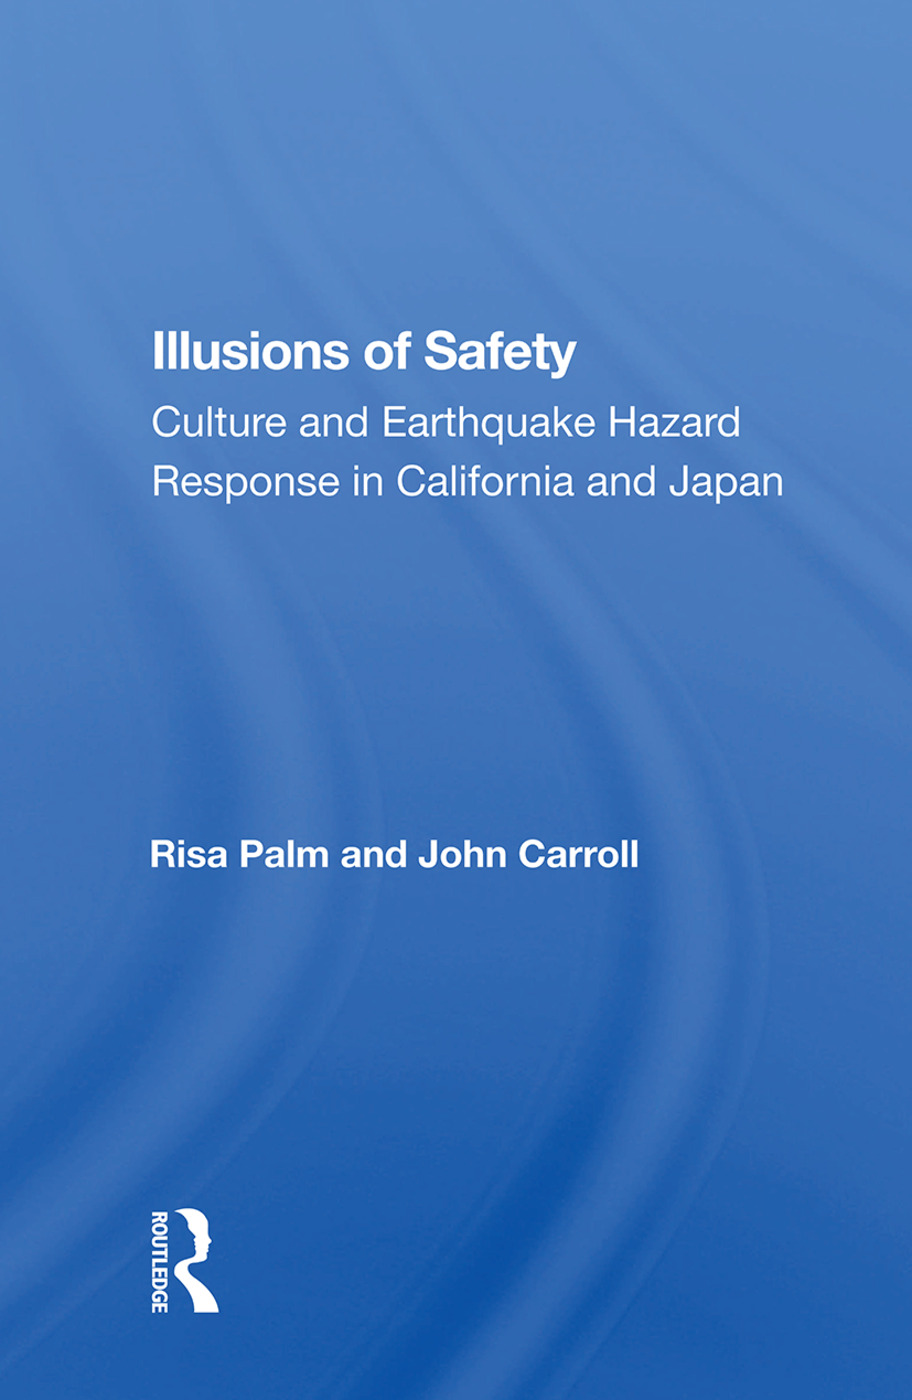 Illusions of Safety: Culture and Earthquake Hazard Response in California and Japan book cover